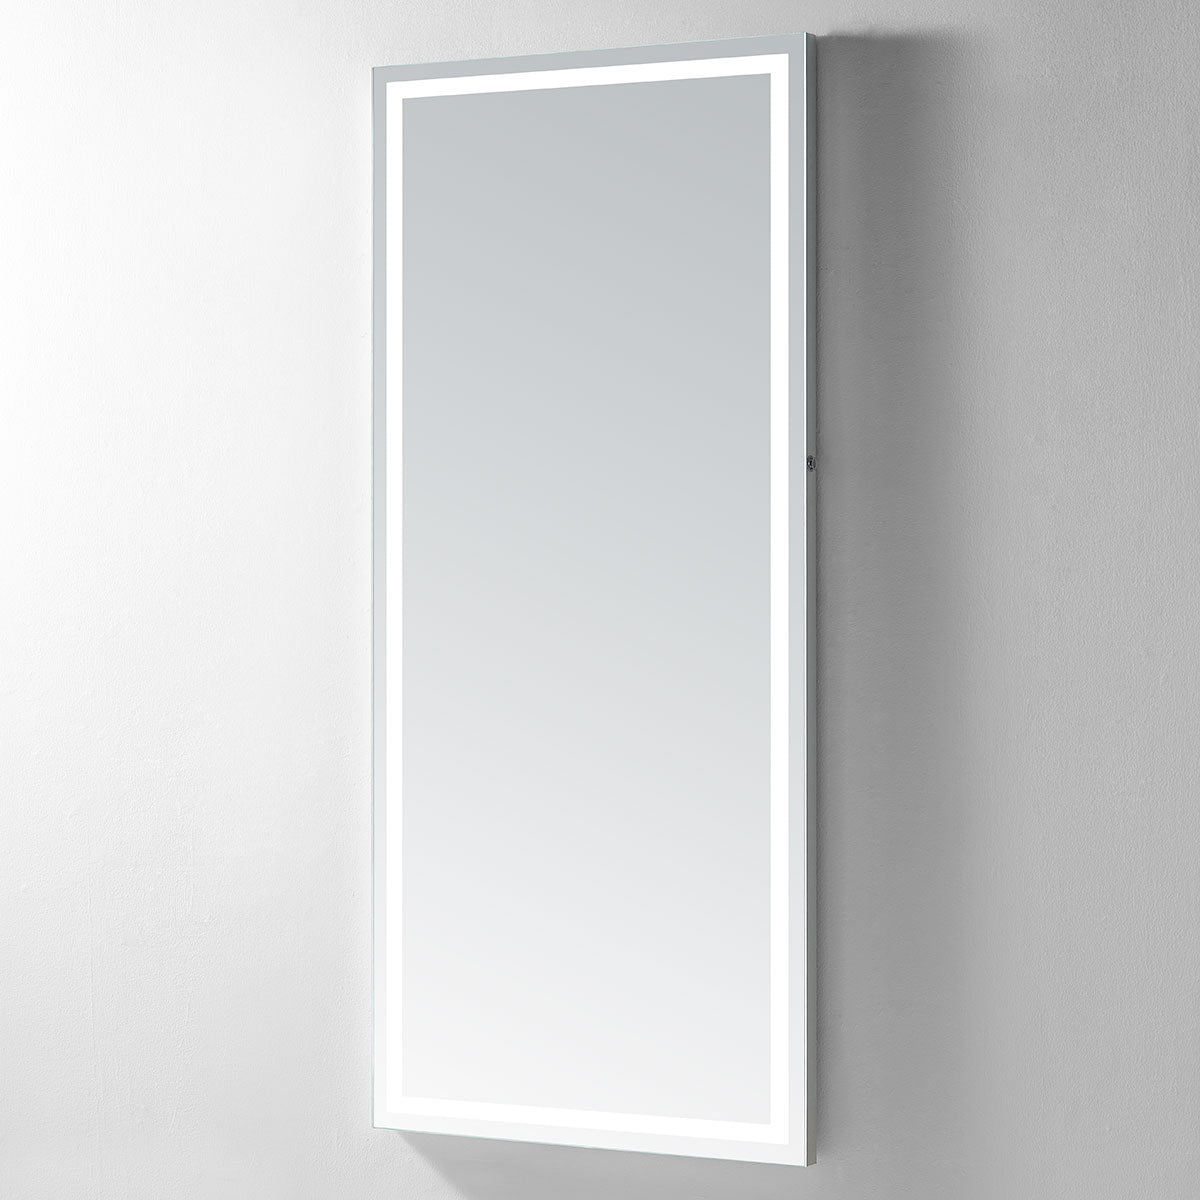 Hermes 85 Lighted Full Length Vanity Mirror